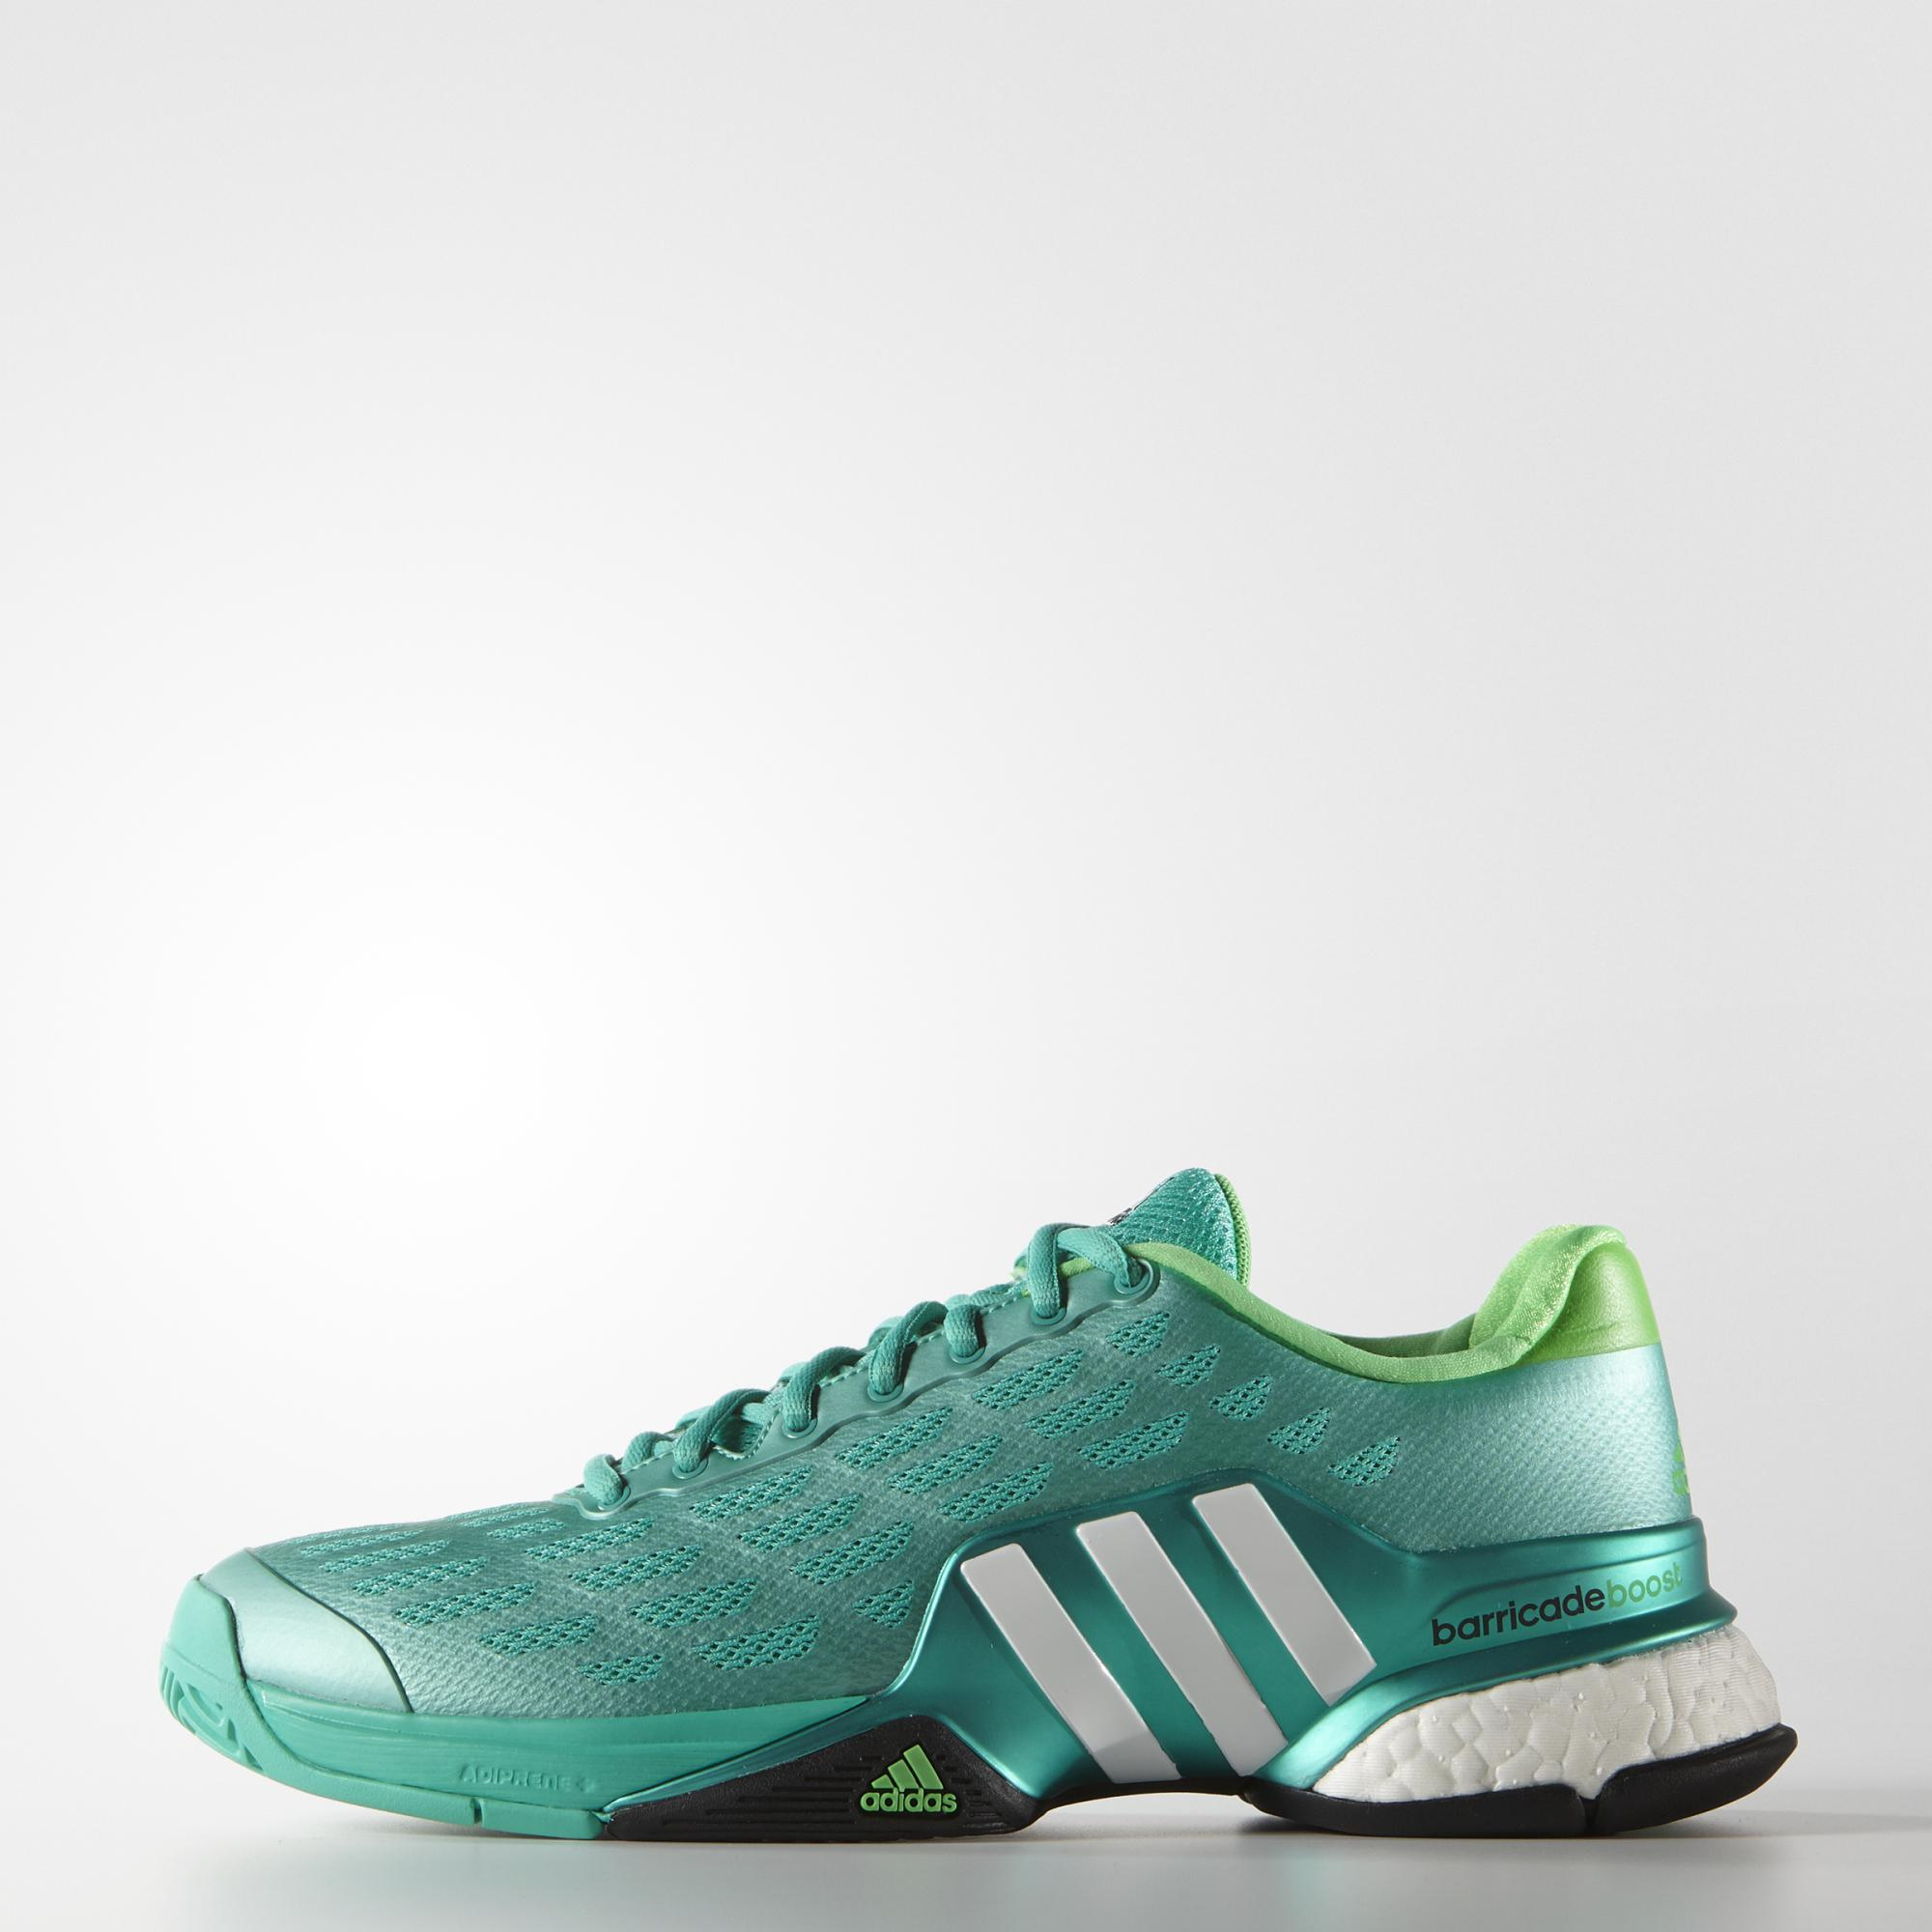 Adidas Mens Barricade Boost 2016 Tennis Shoes Green